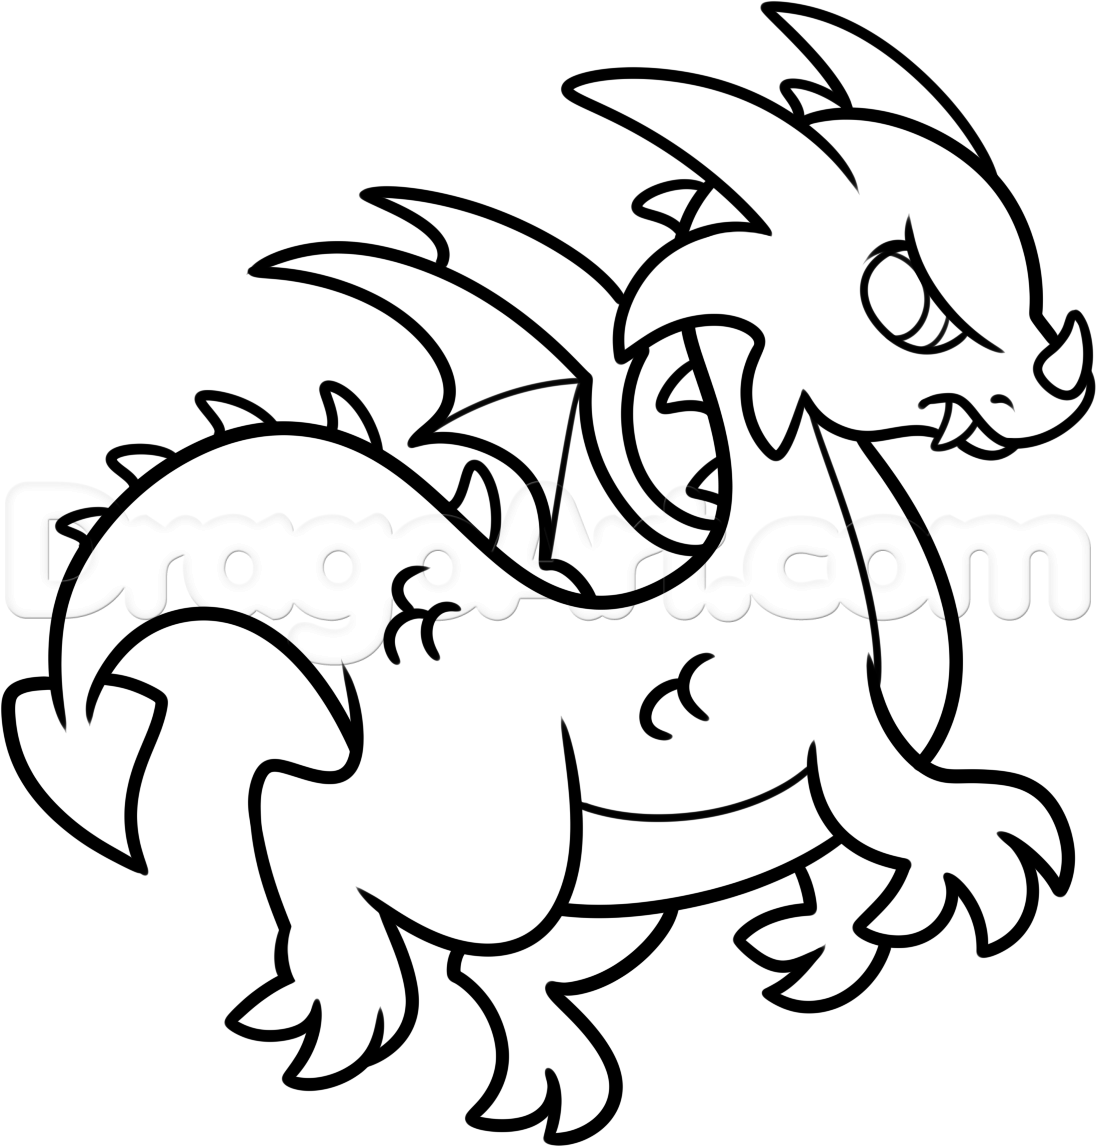 How To Draw A Simple Dragon Step 8